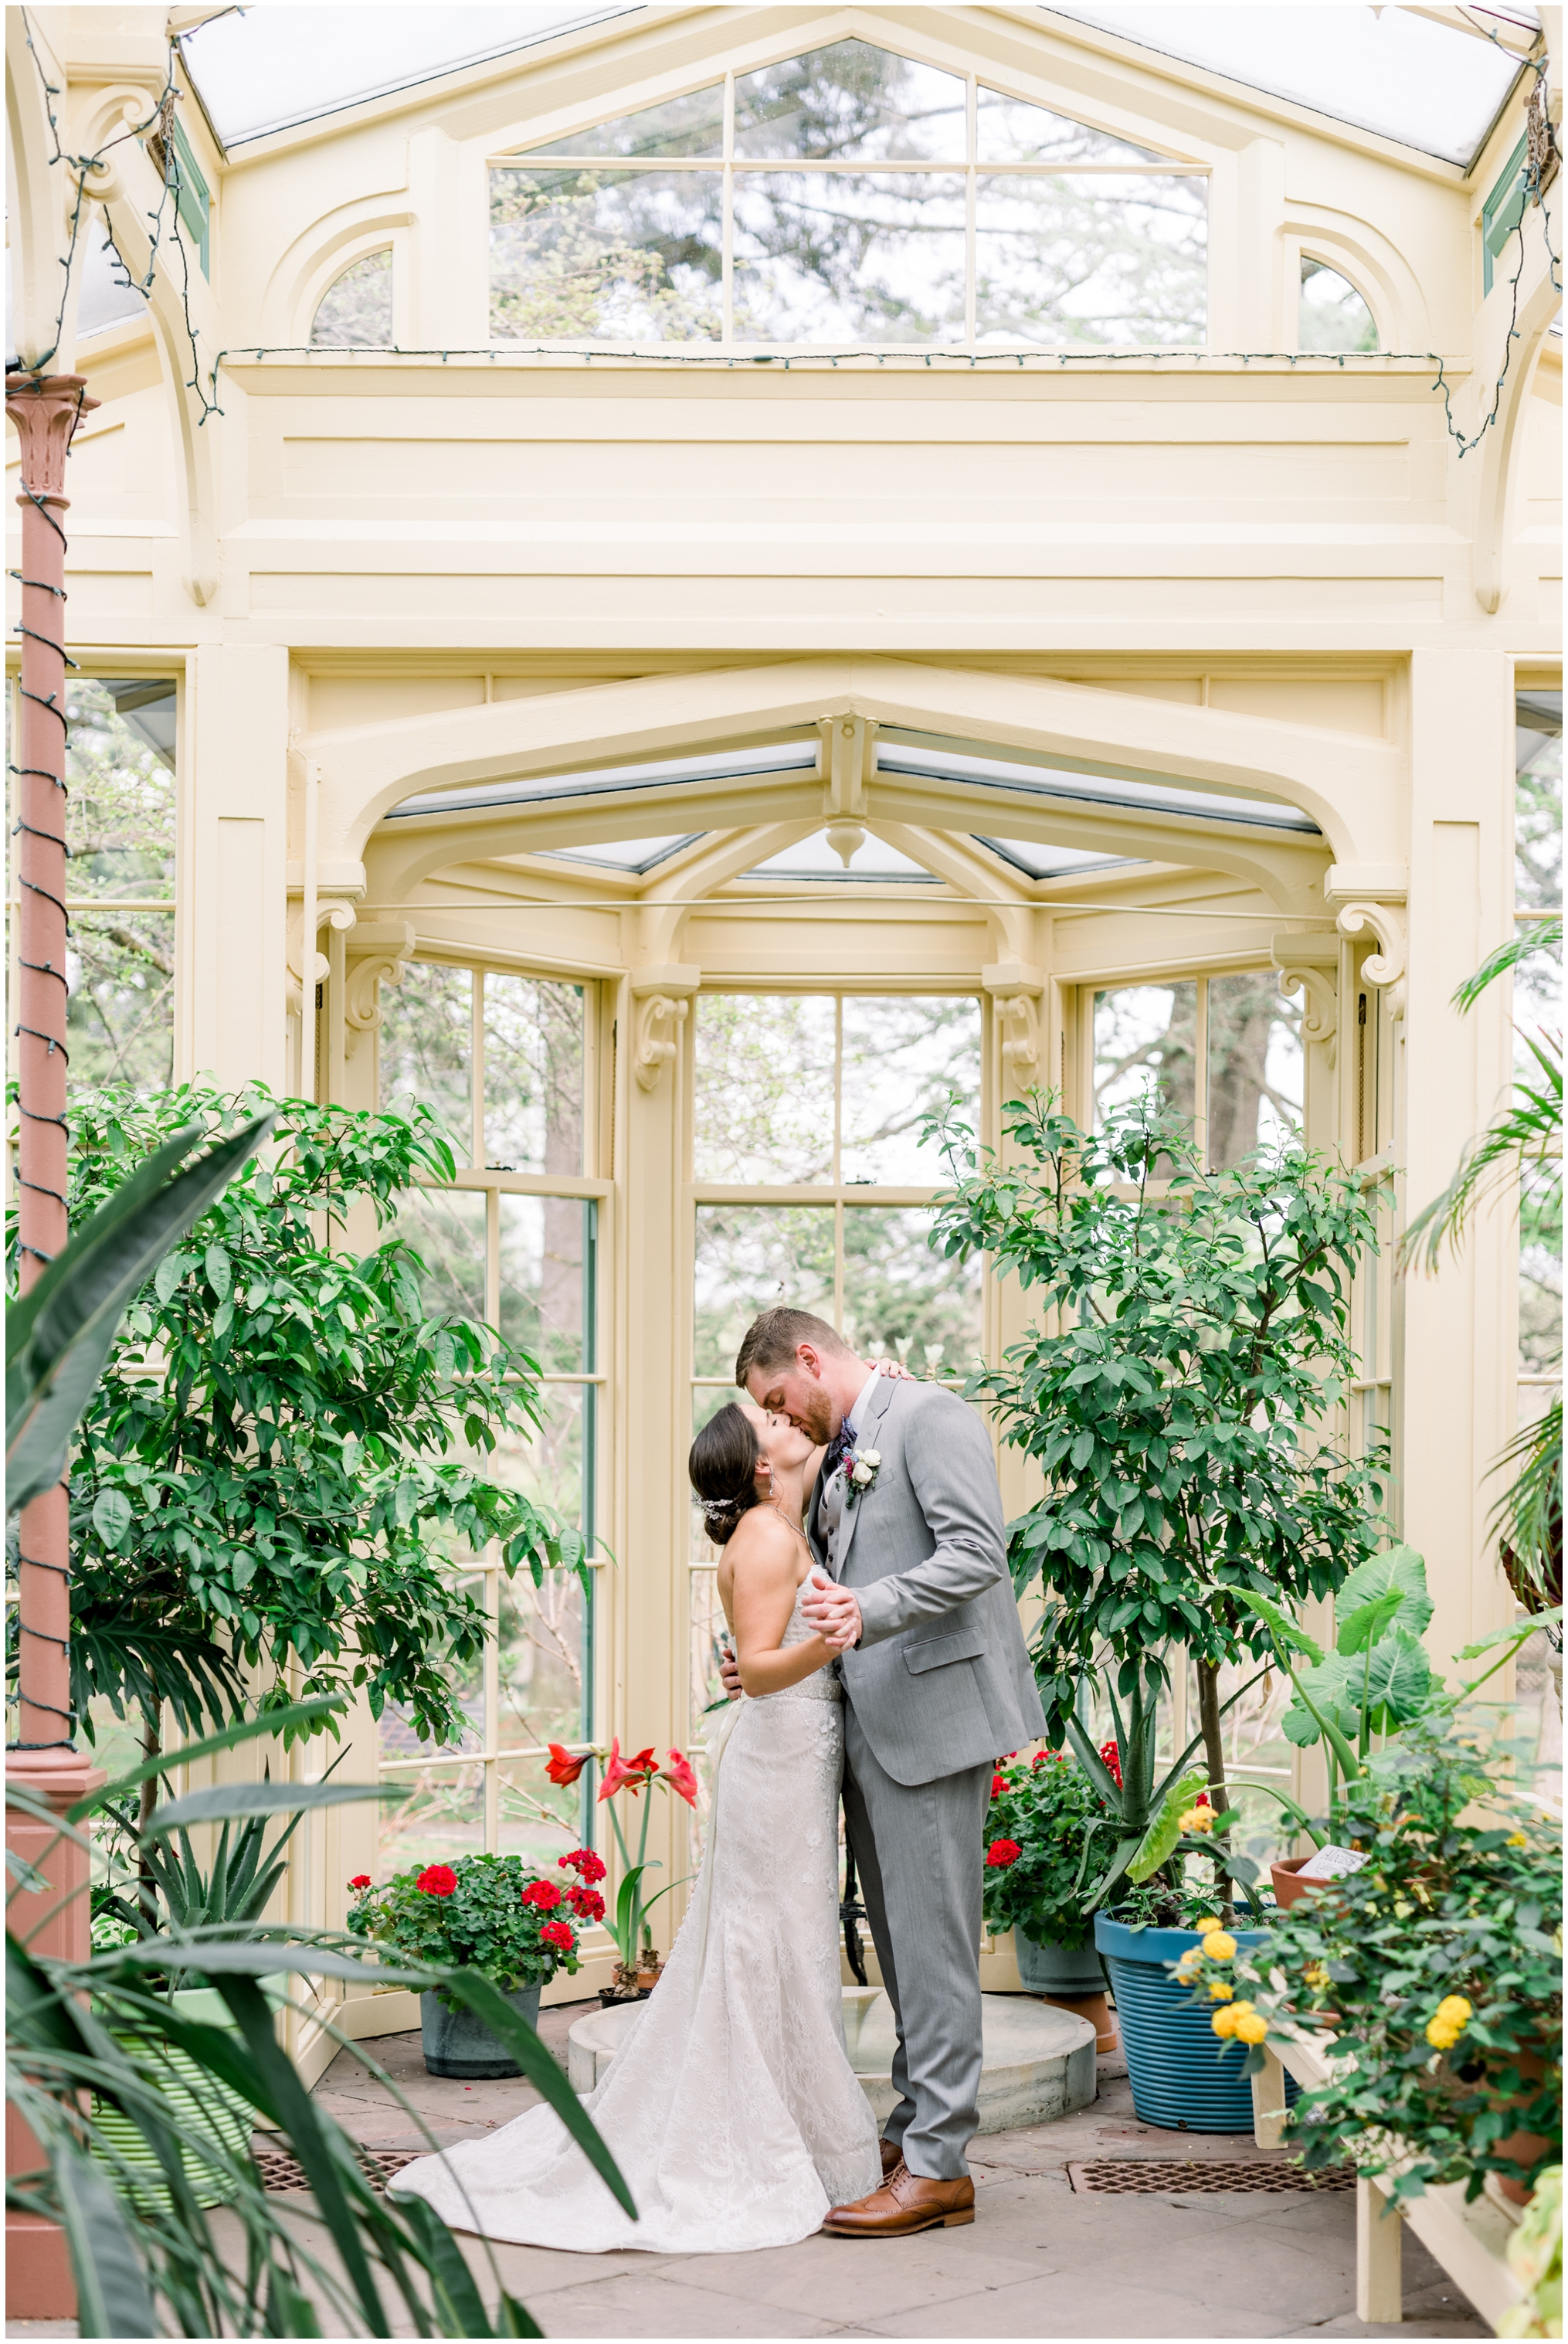 Krista Brackin Photography | April Wedding at The Carriage House at Rockwood Park_0078.jpg